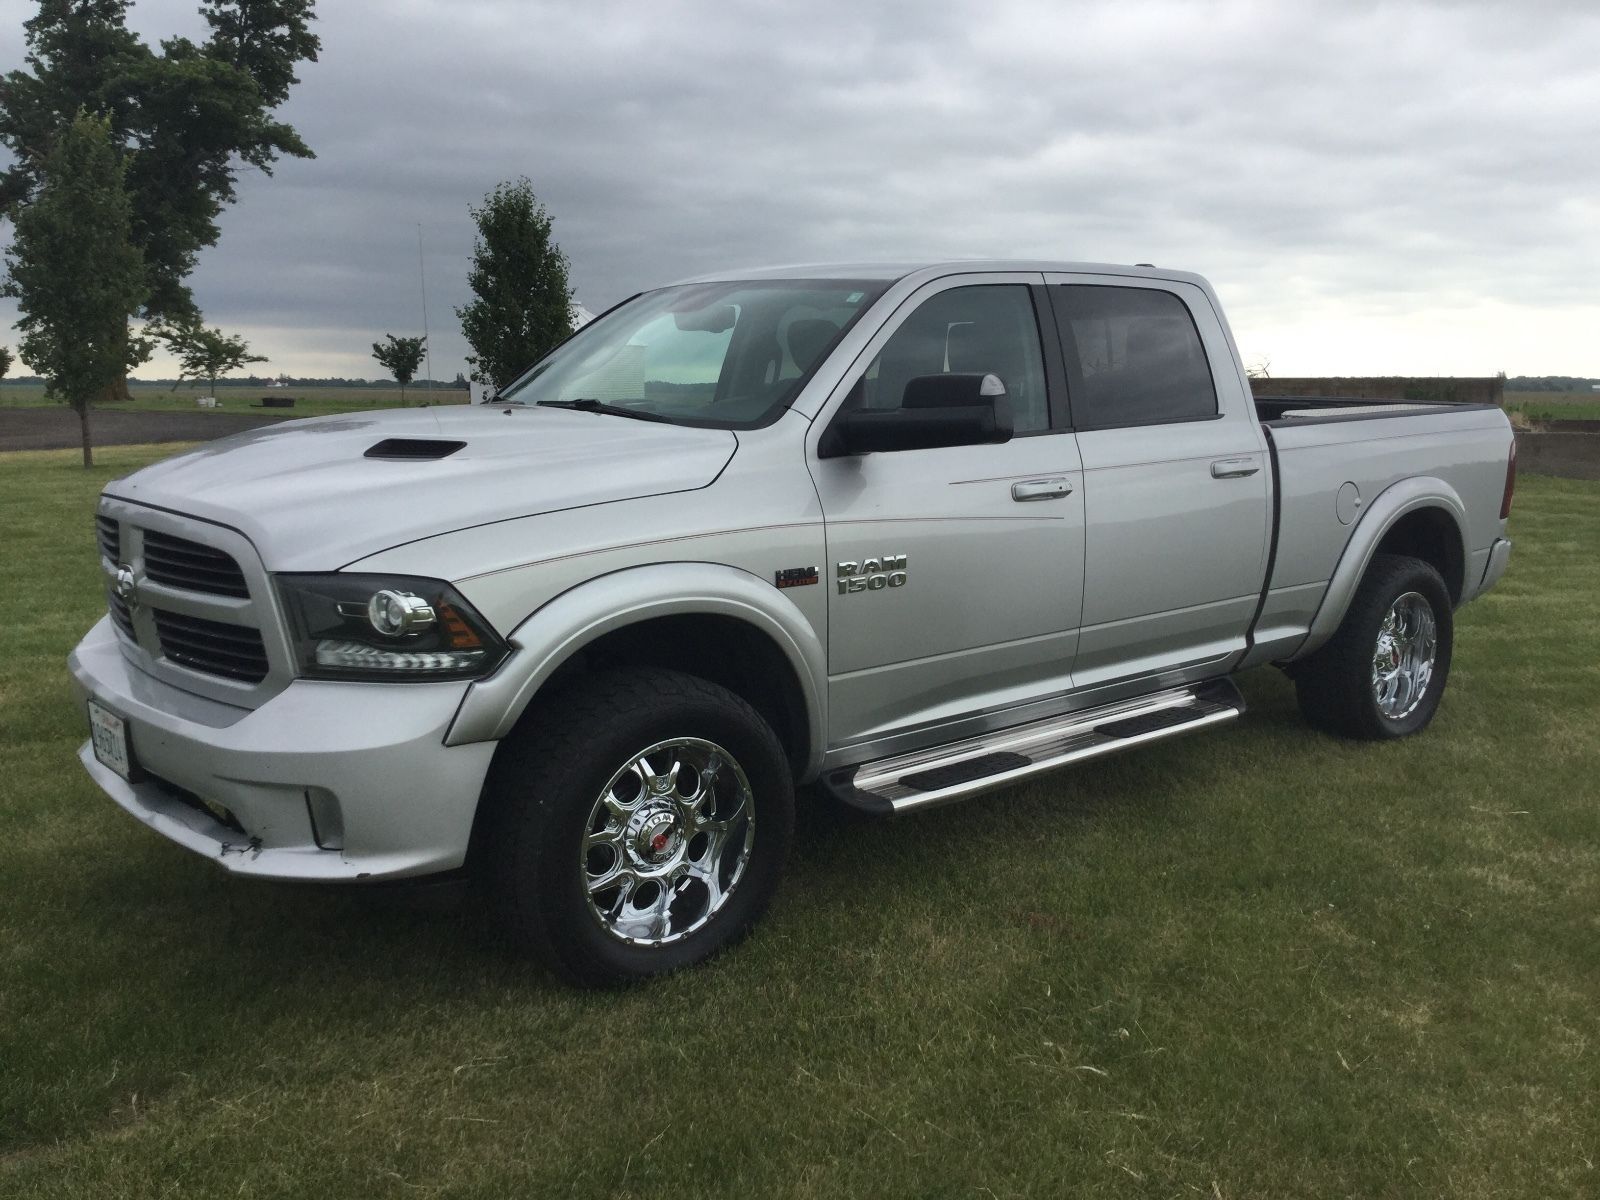 fully loaded 2013 ram 1500 laramie pickup for sale. Black Bedroom Furniture Sets. Home Design Ideas